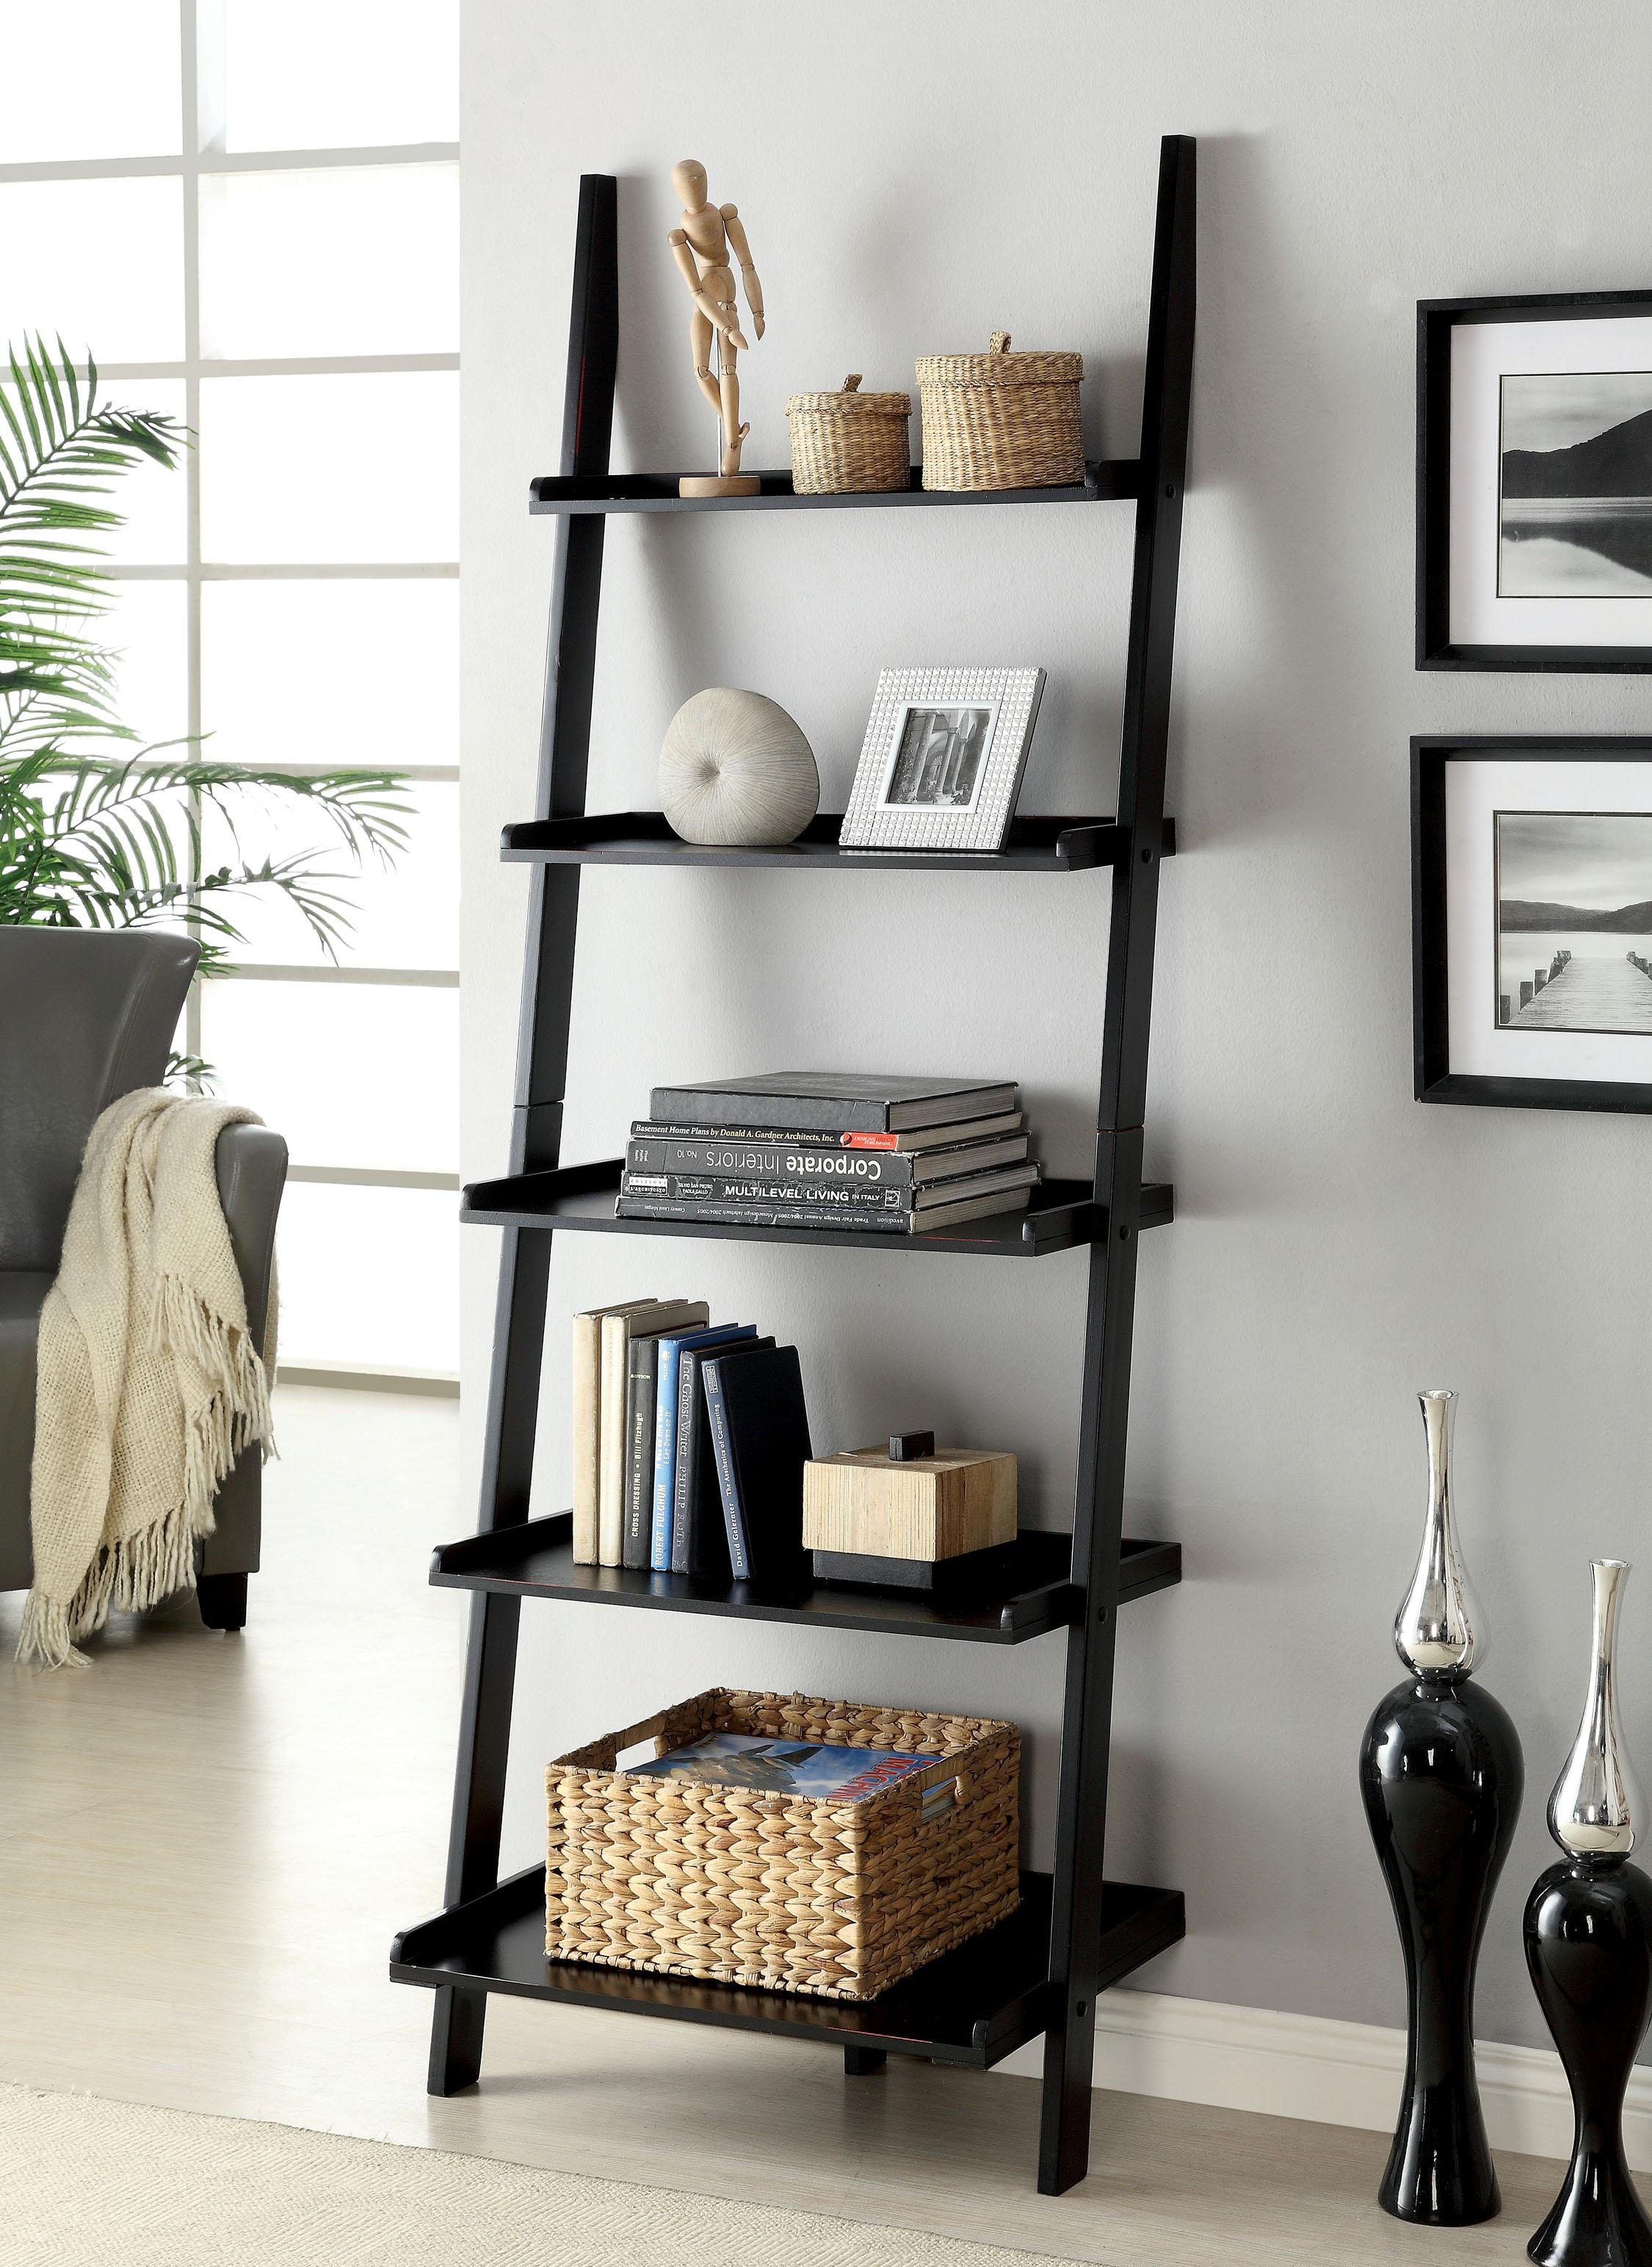 Decorating: Antique Wooden Ladder Bookshelf On White Wall For Home ...